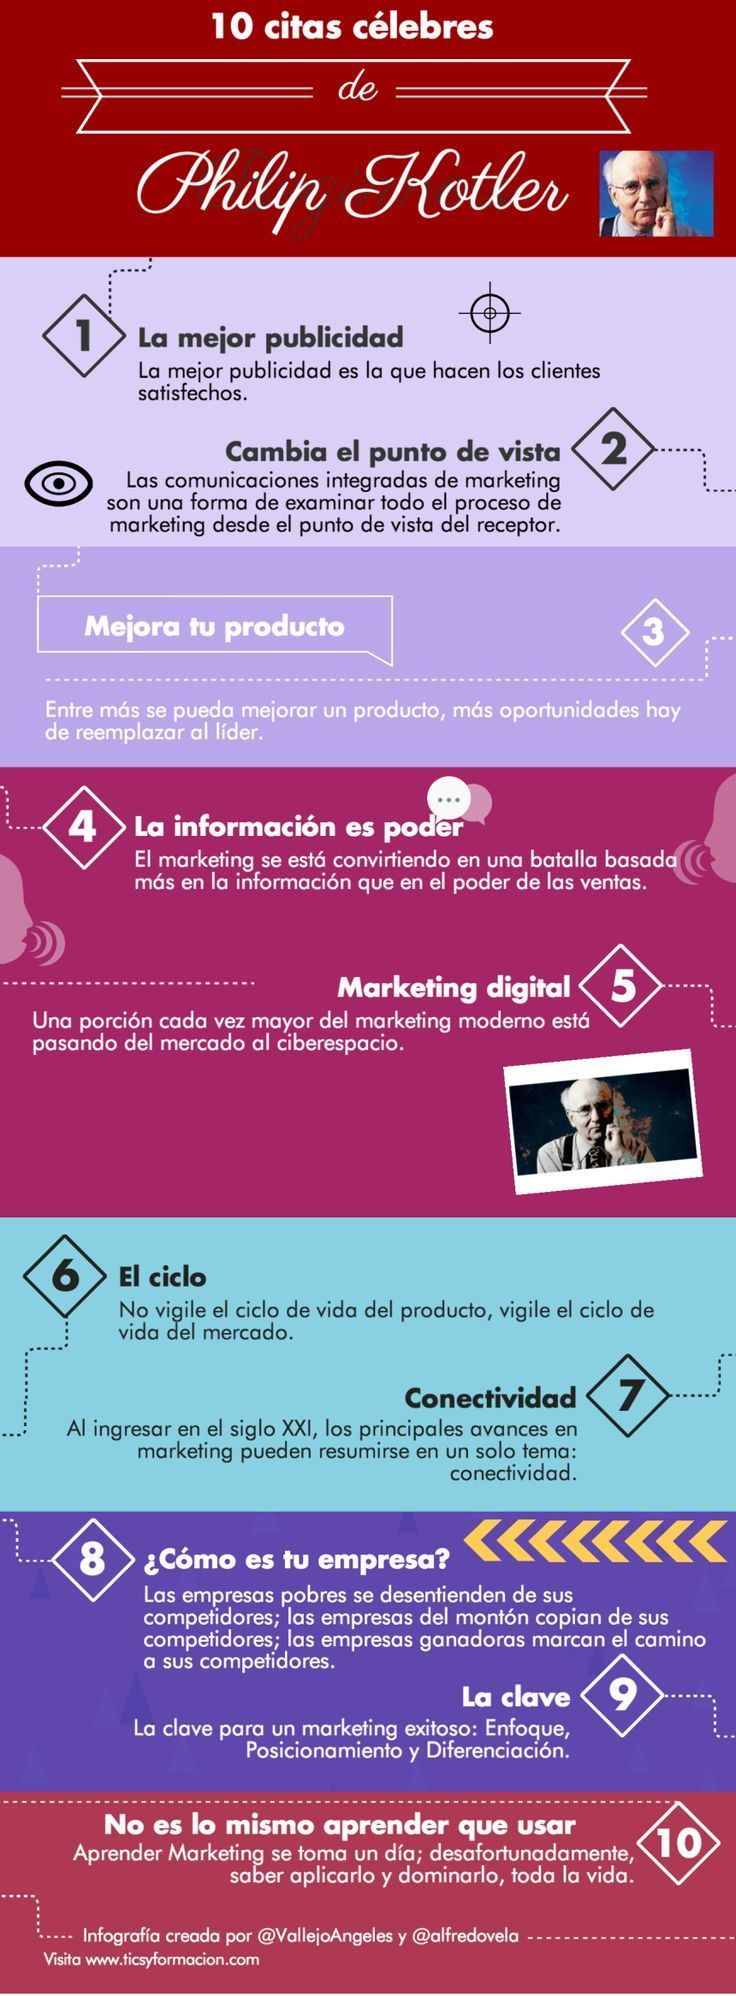 Frases de Philip Kotler #marketing > Confira as nossas recomendações! http://www.estrategiadigital.pt/category/livros-marketing-digital/